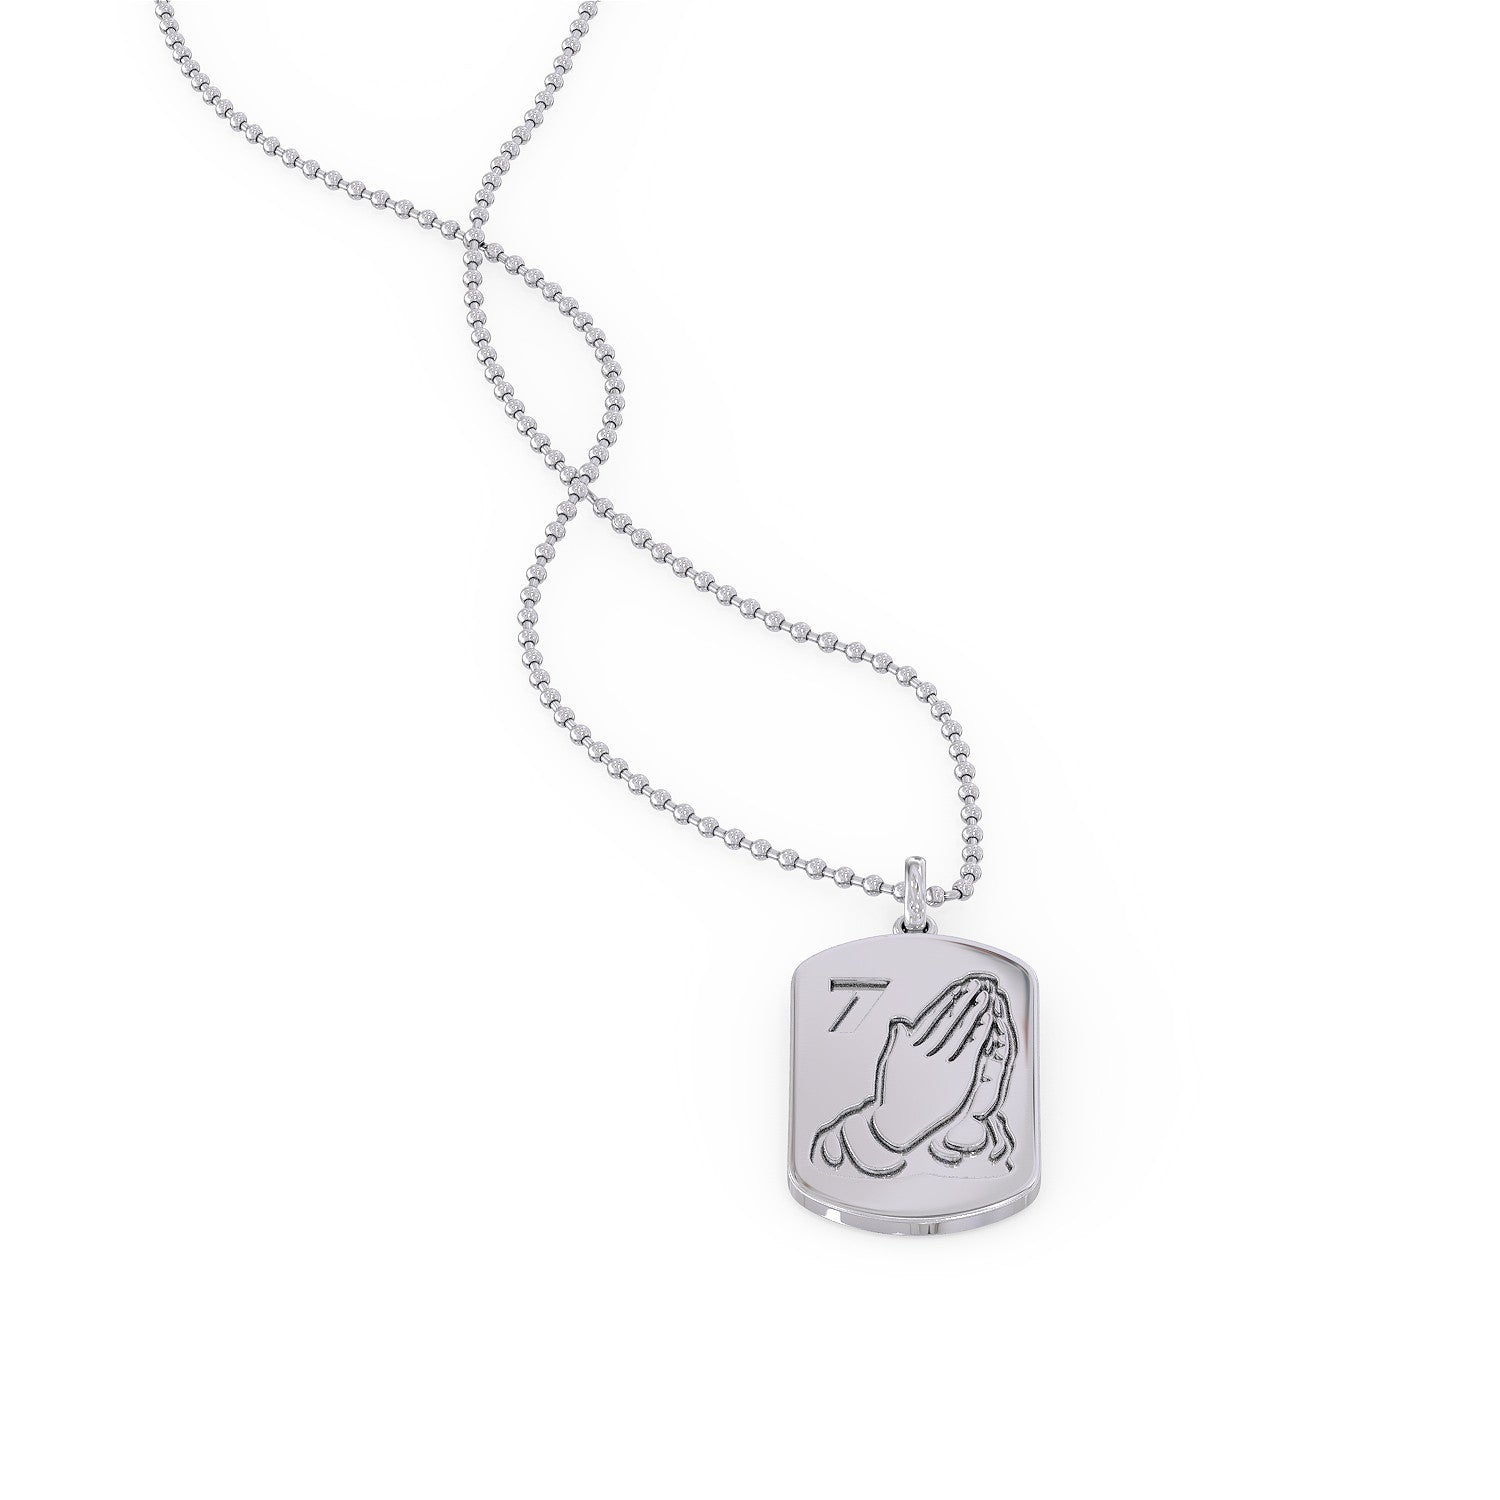 7God Dog Tag Necklace - VERY LIMITED NUMBERS